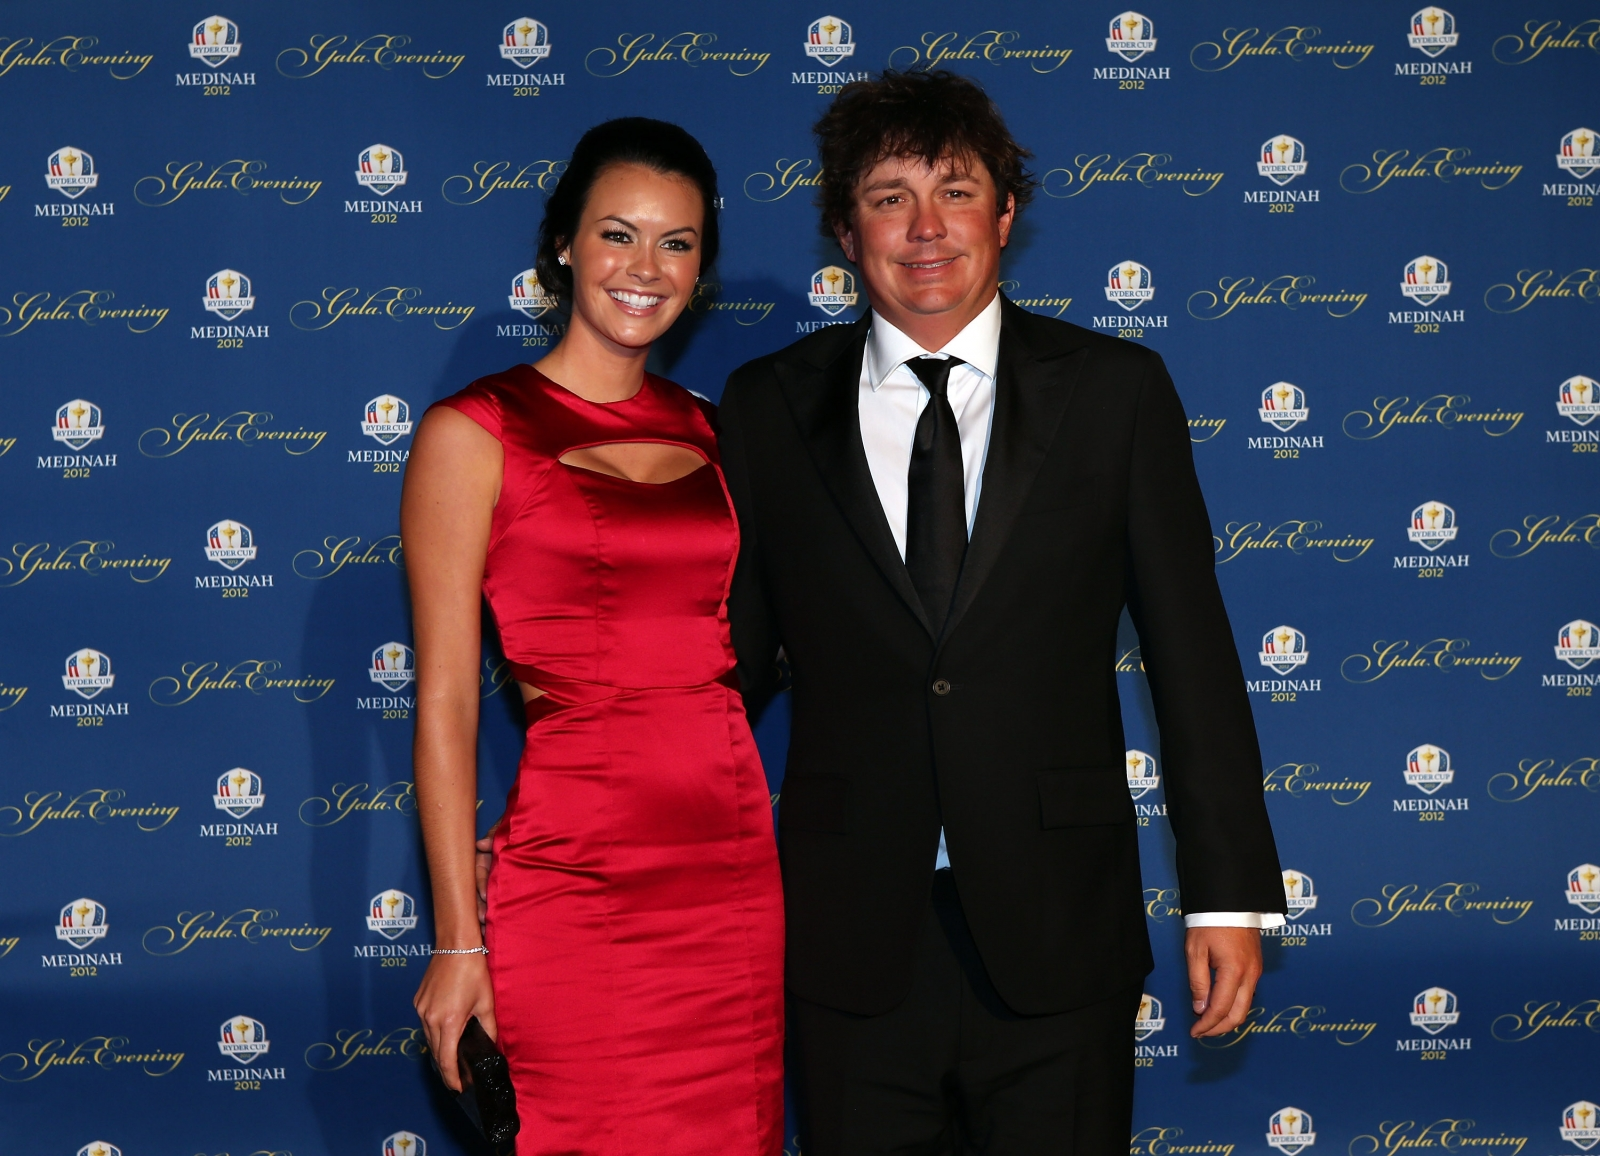 Jason Dufner with Amanda Boyd